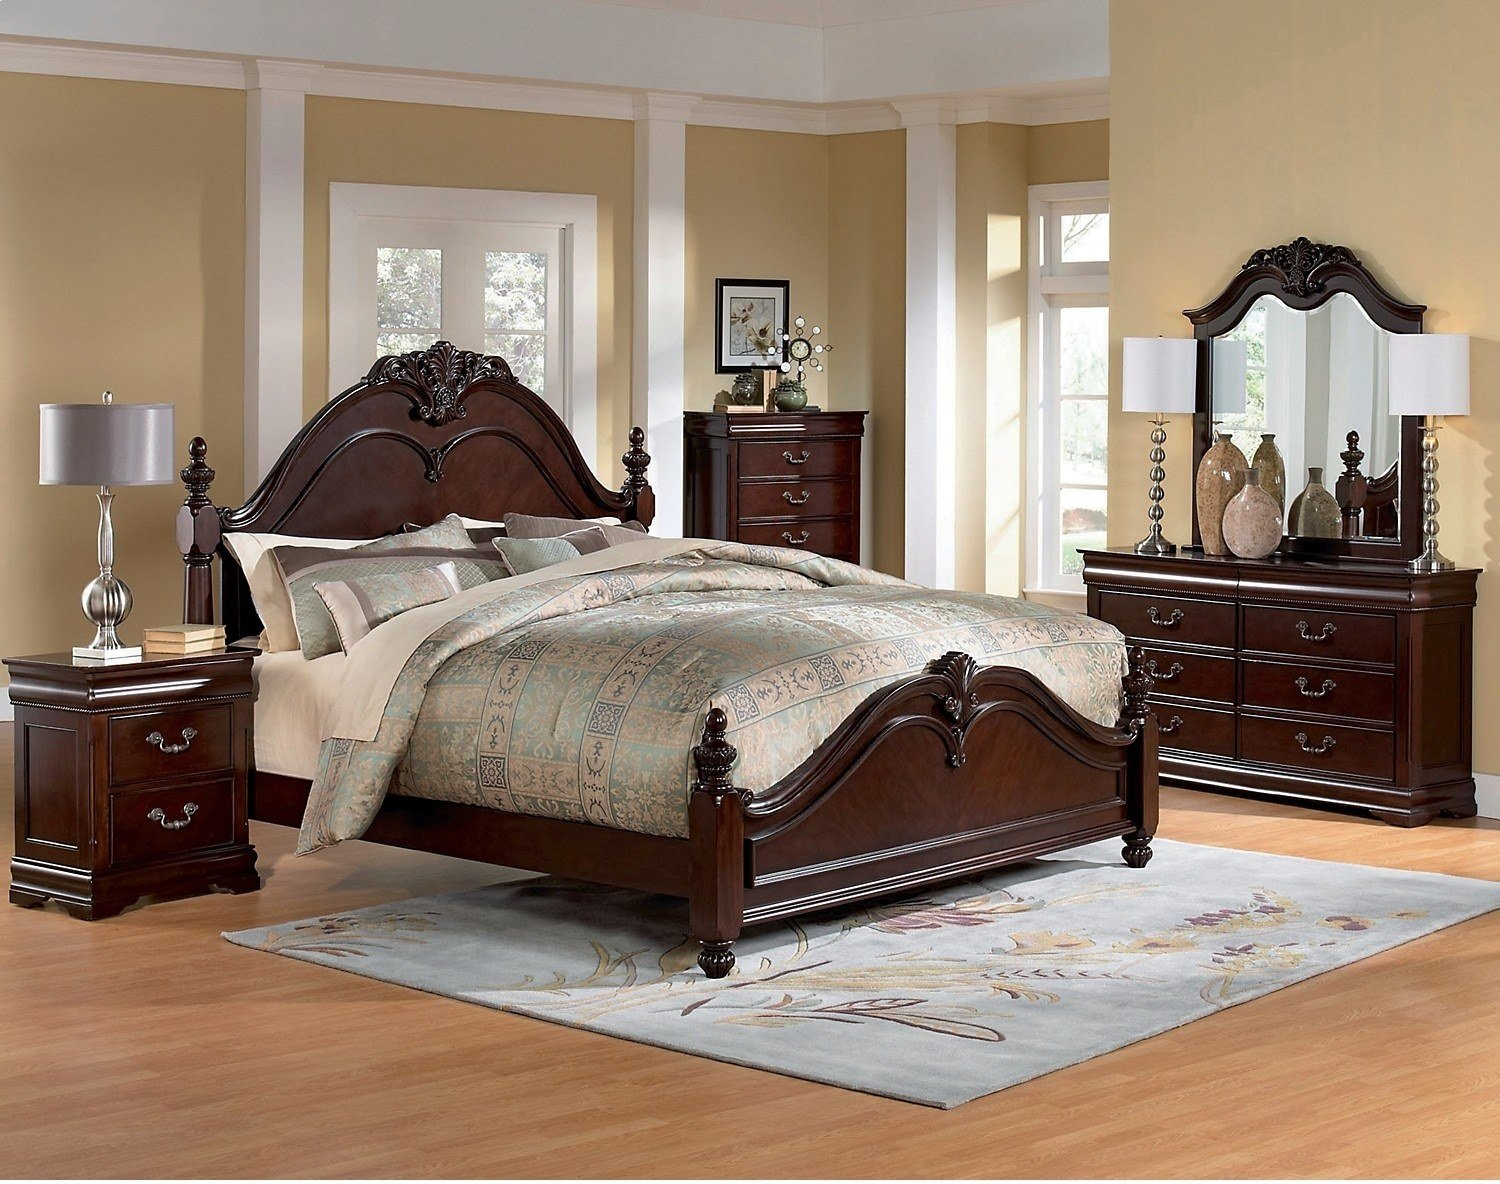 Best Westchester 8 Piece King Bedroom Set The Brick With Pictures